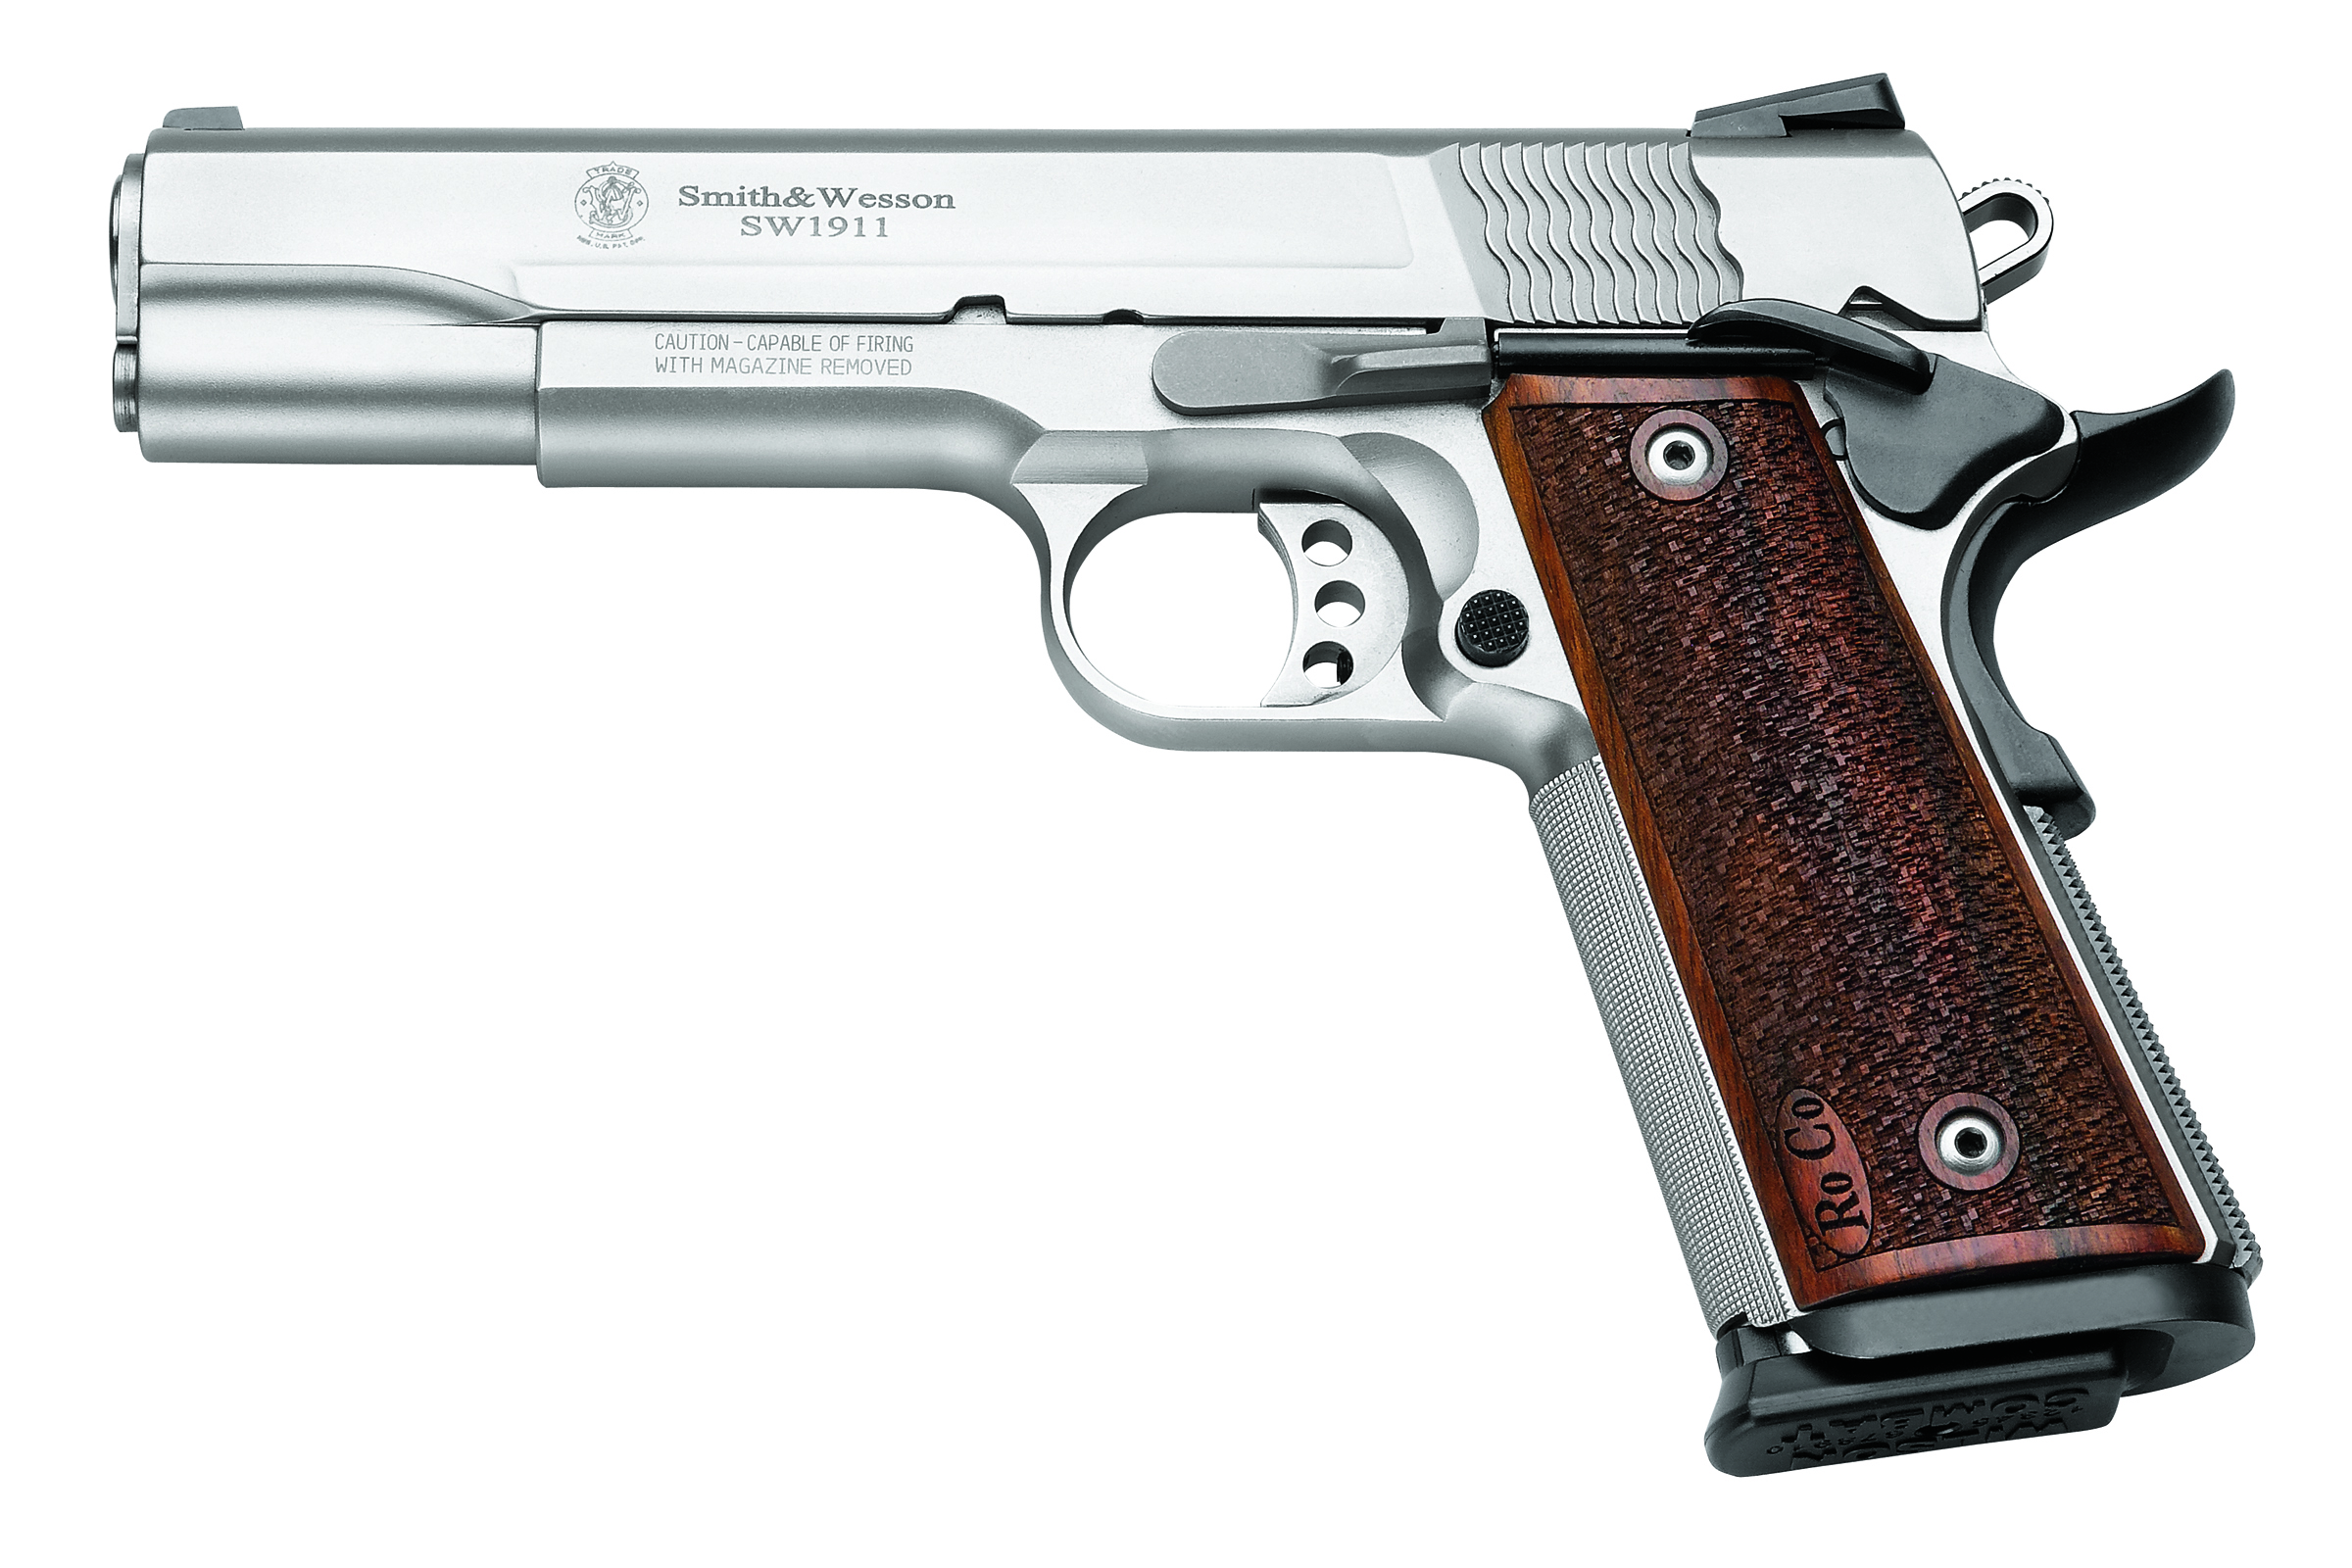 Smith and Wesson SW1911 9mm